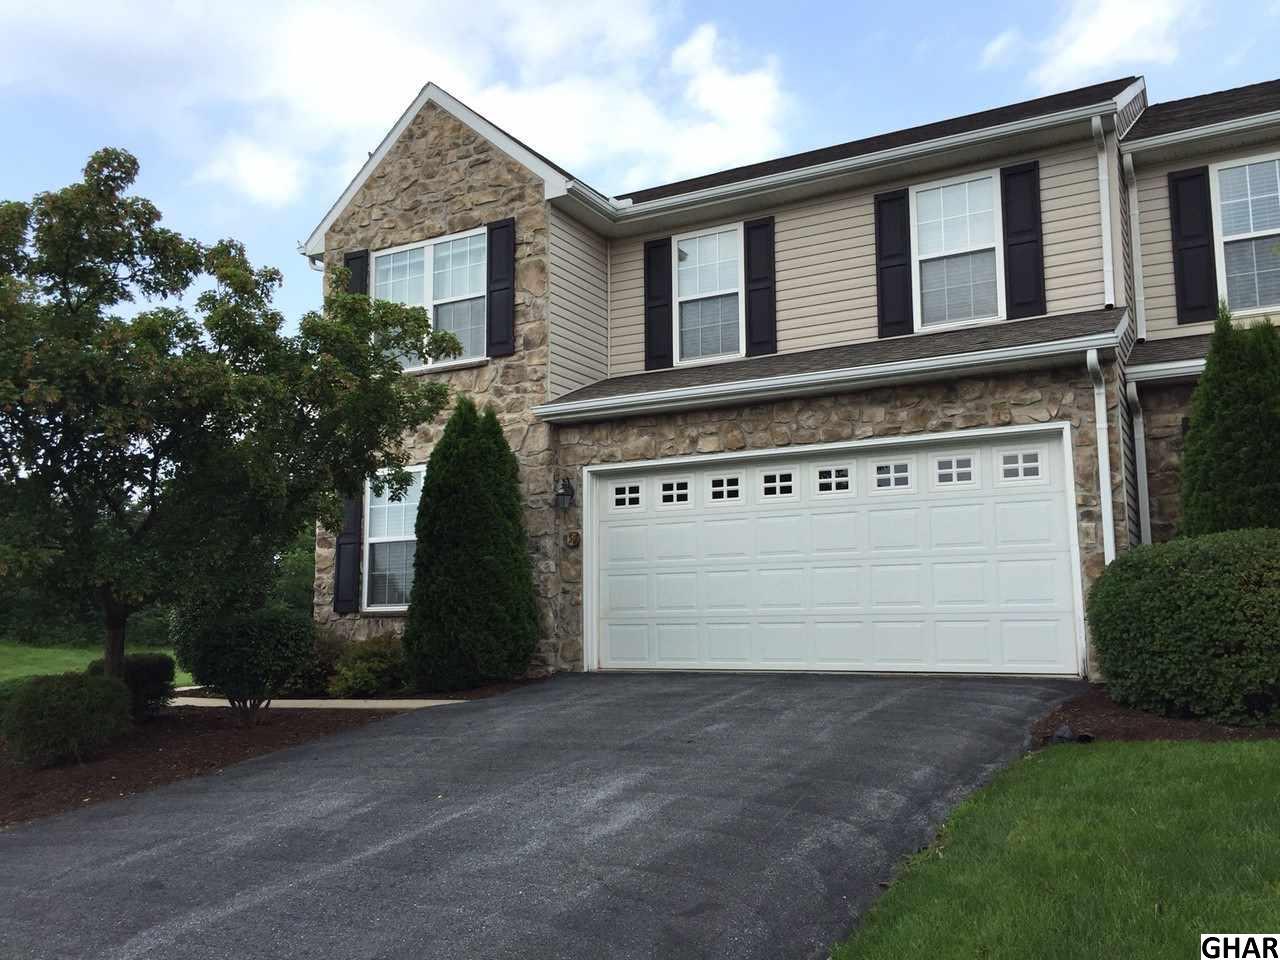 Rental Homes for Rent, ListingId:34157354, location: 57 Carousel Cir Hershey 17033